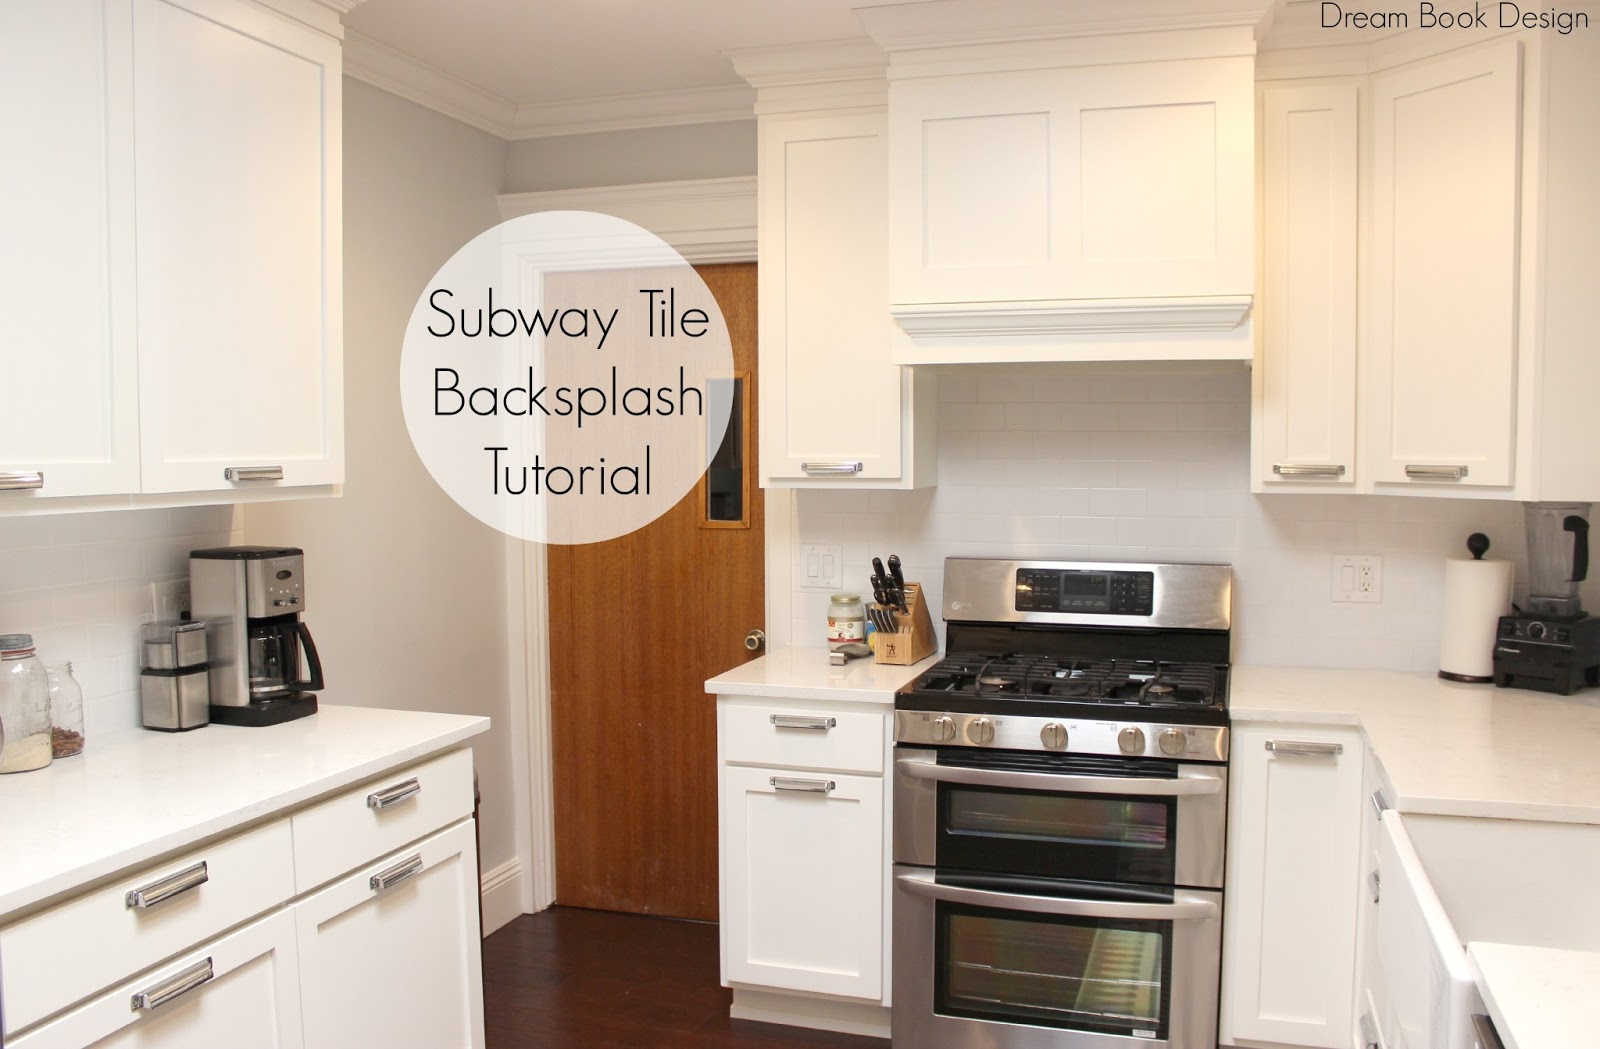 Easy diy subway tile backsplash tutorial dream book design How to put tile on wall in the kitchen